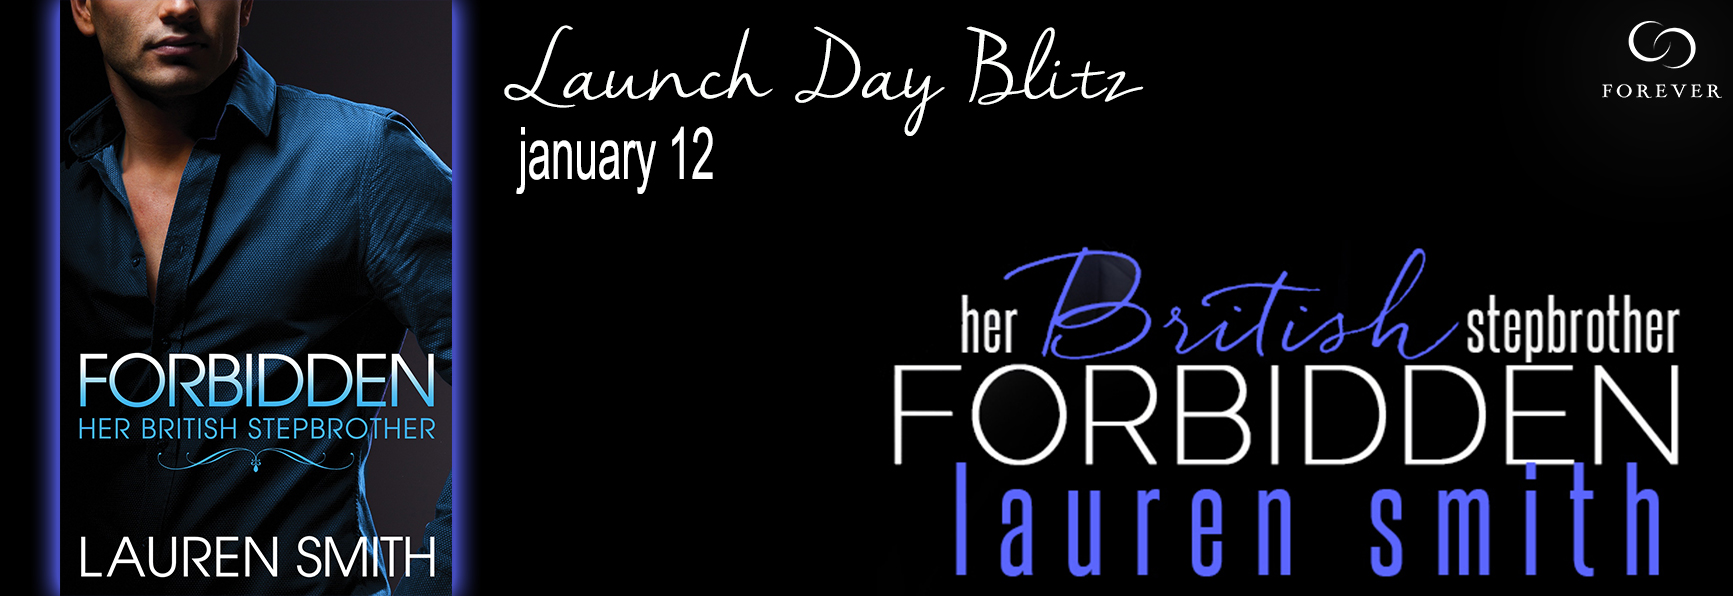 Forbidden-Launch-Day-Blitz